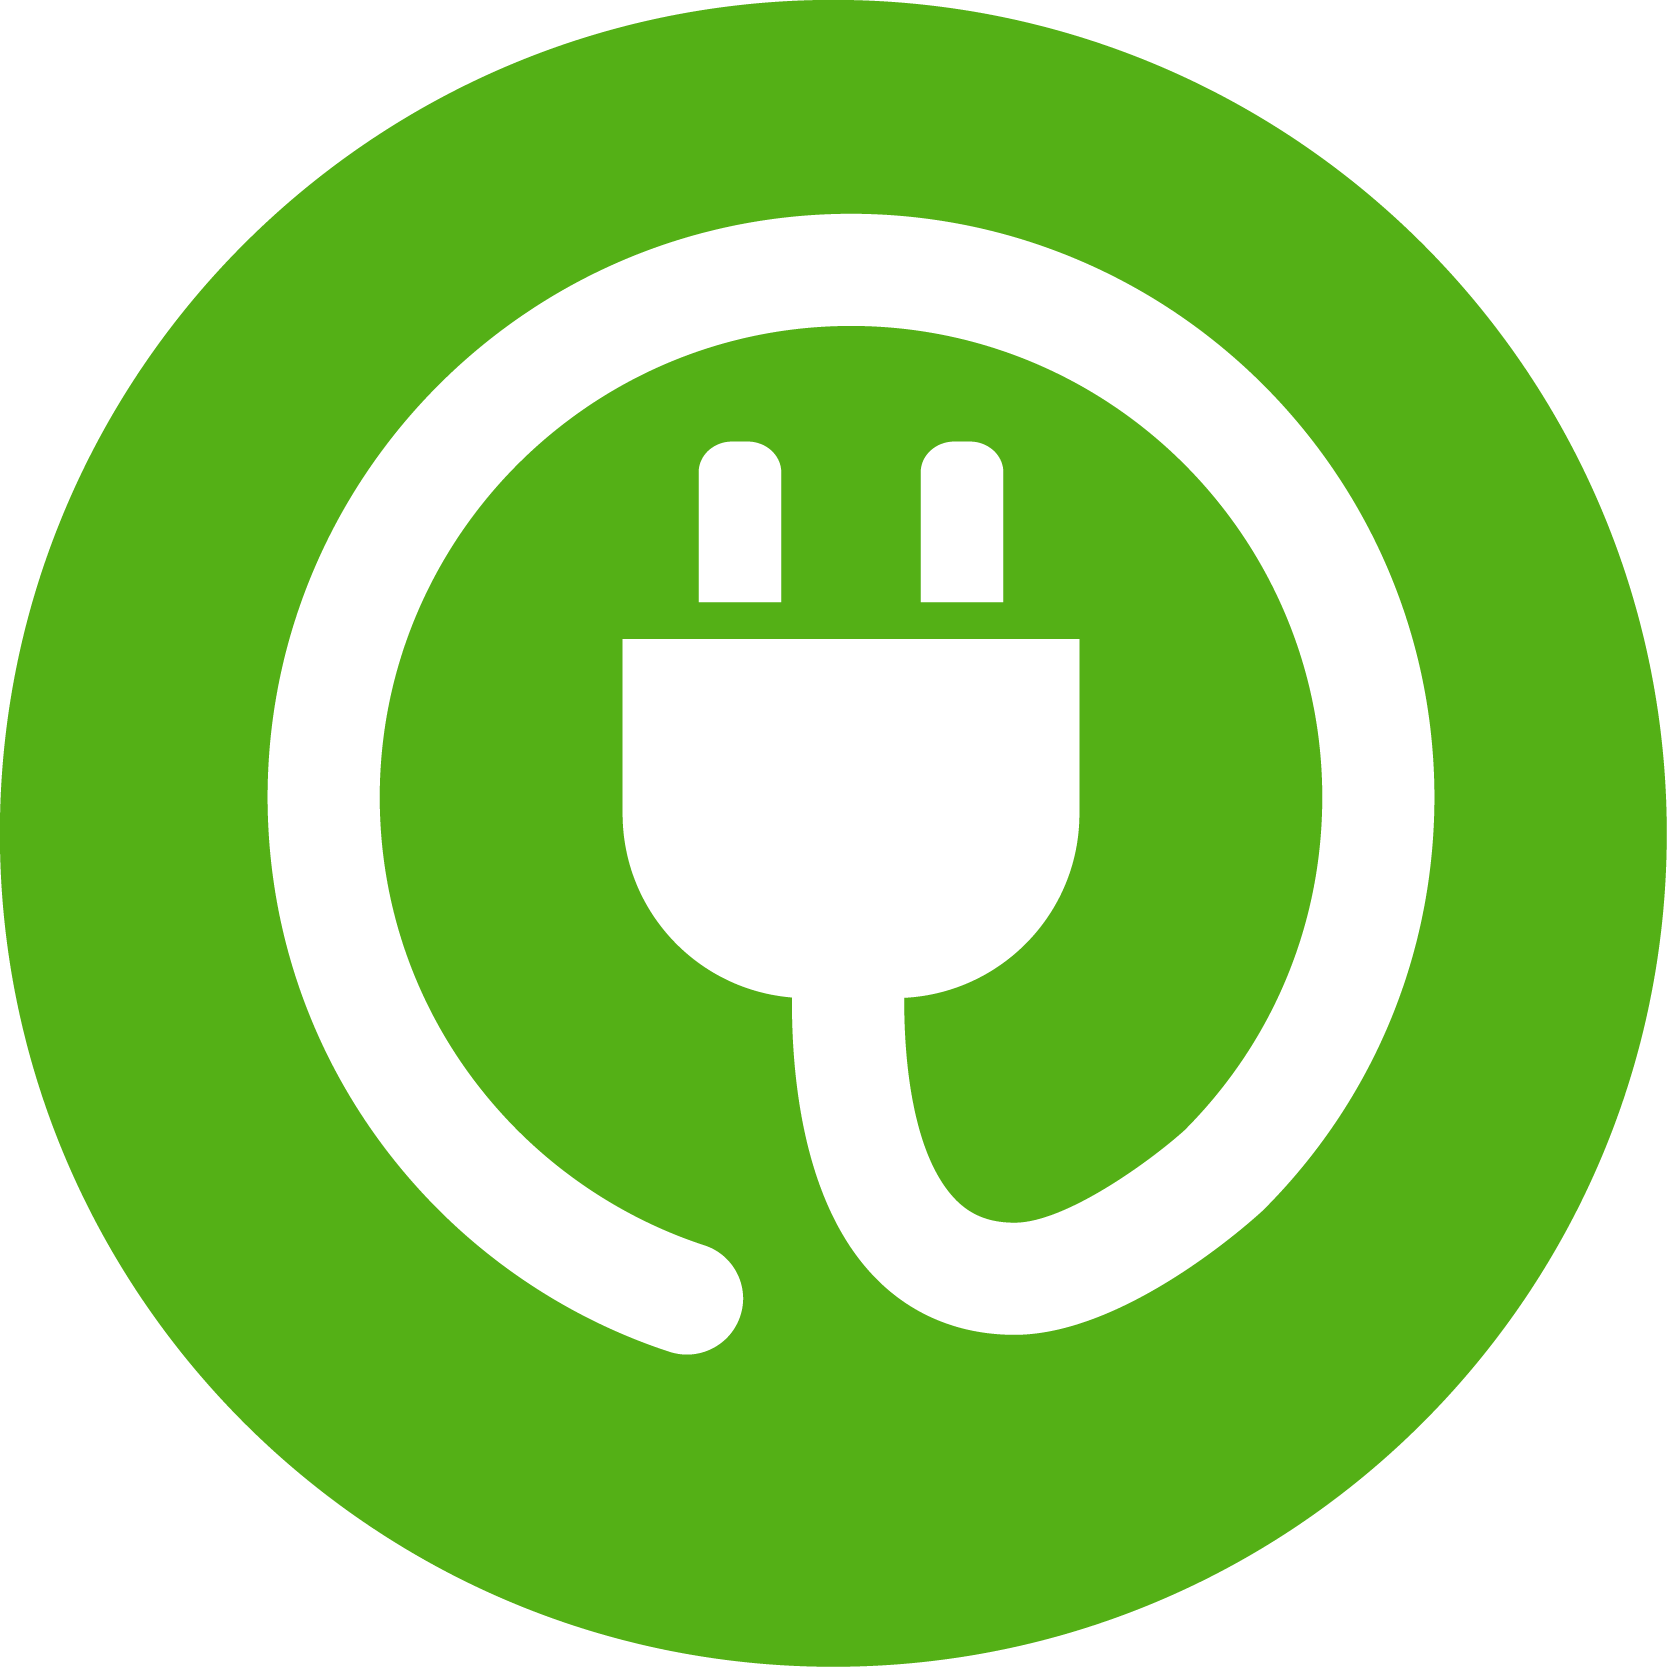 icon-psu-power-supply-generic.png